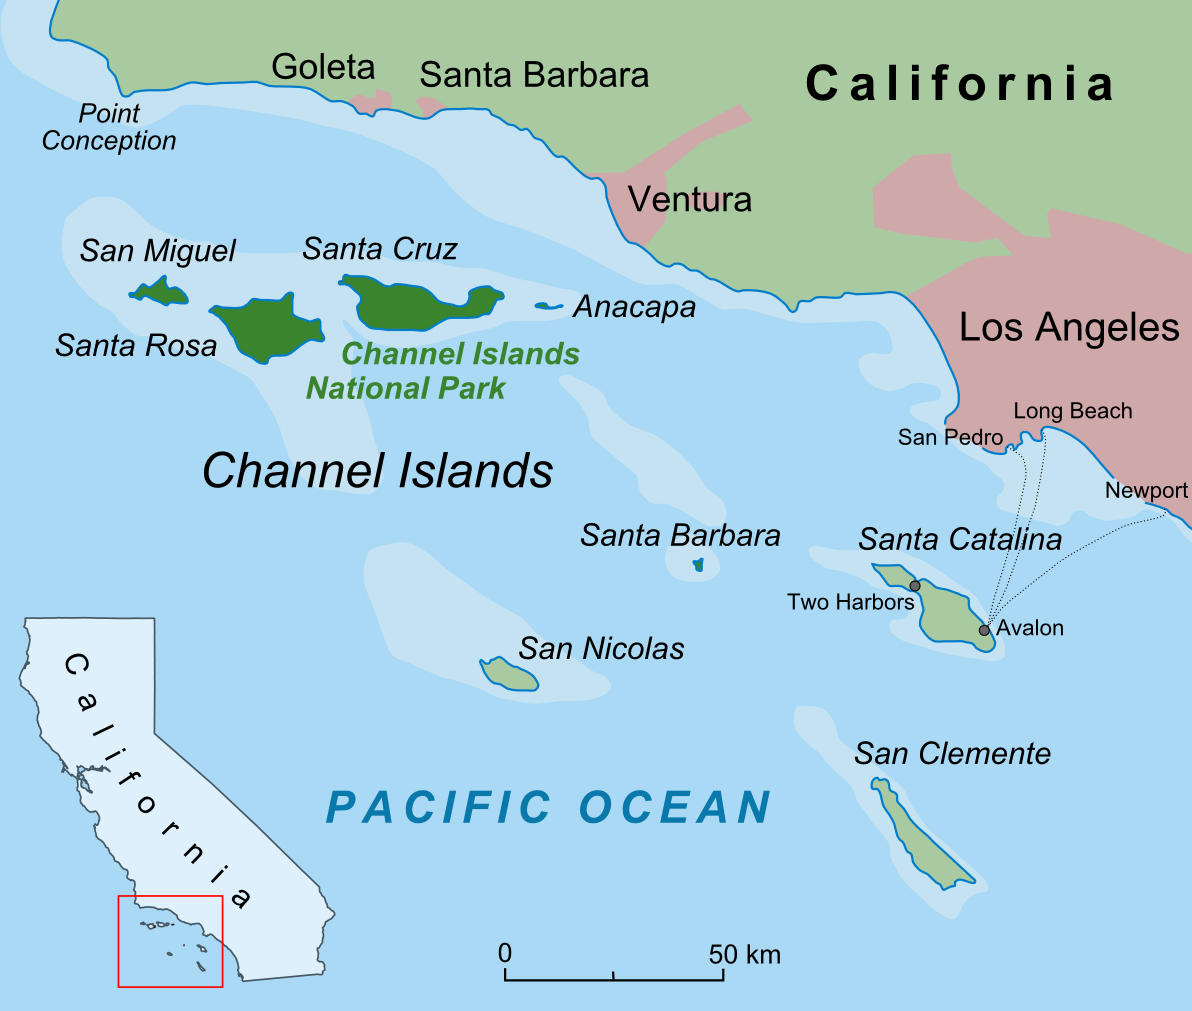 Santa Barbara Island Wikipedia - Los angeles ventura map